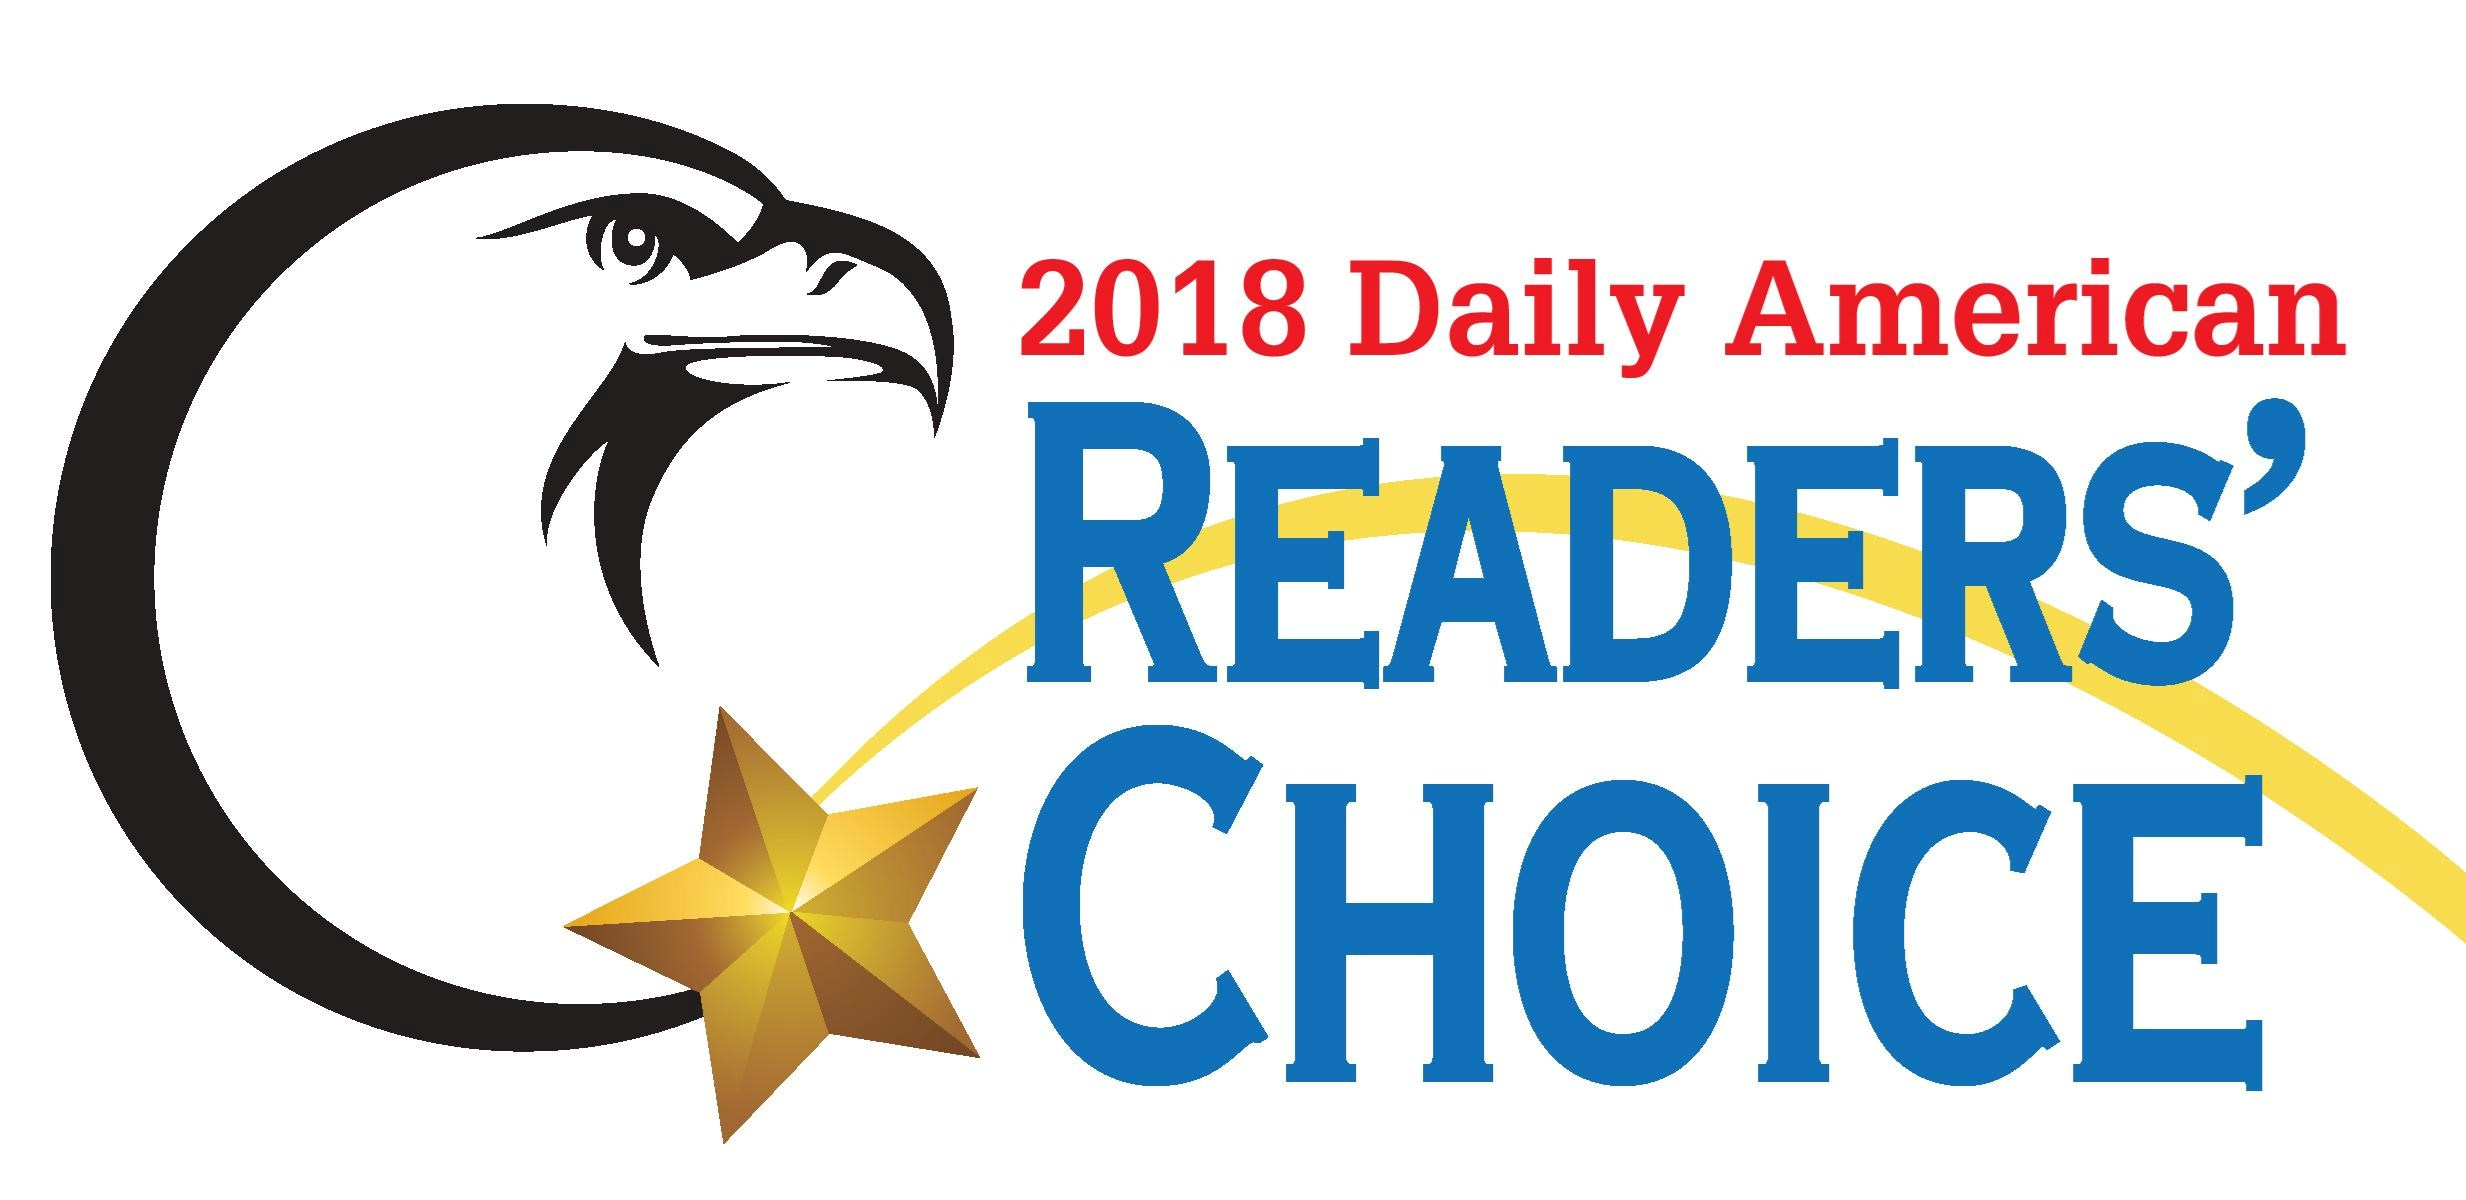 Furniture Consignment And More   Daily American Readersu0027 Choice 2018